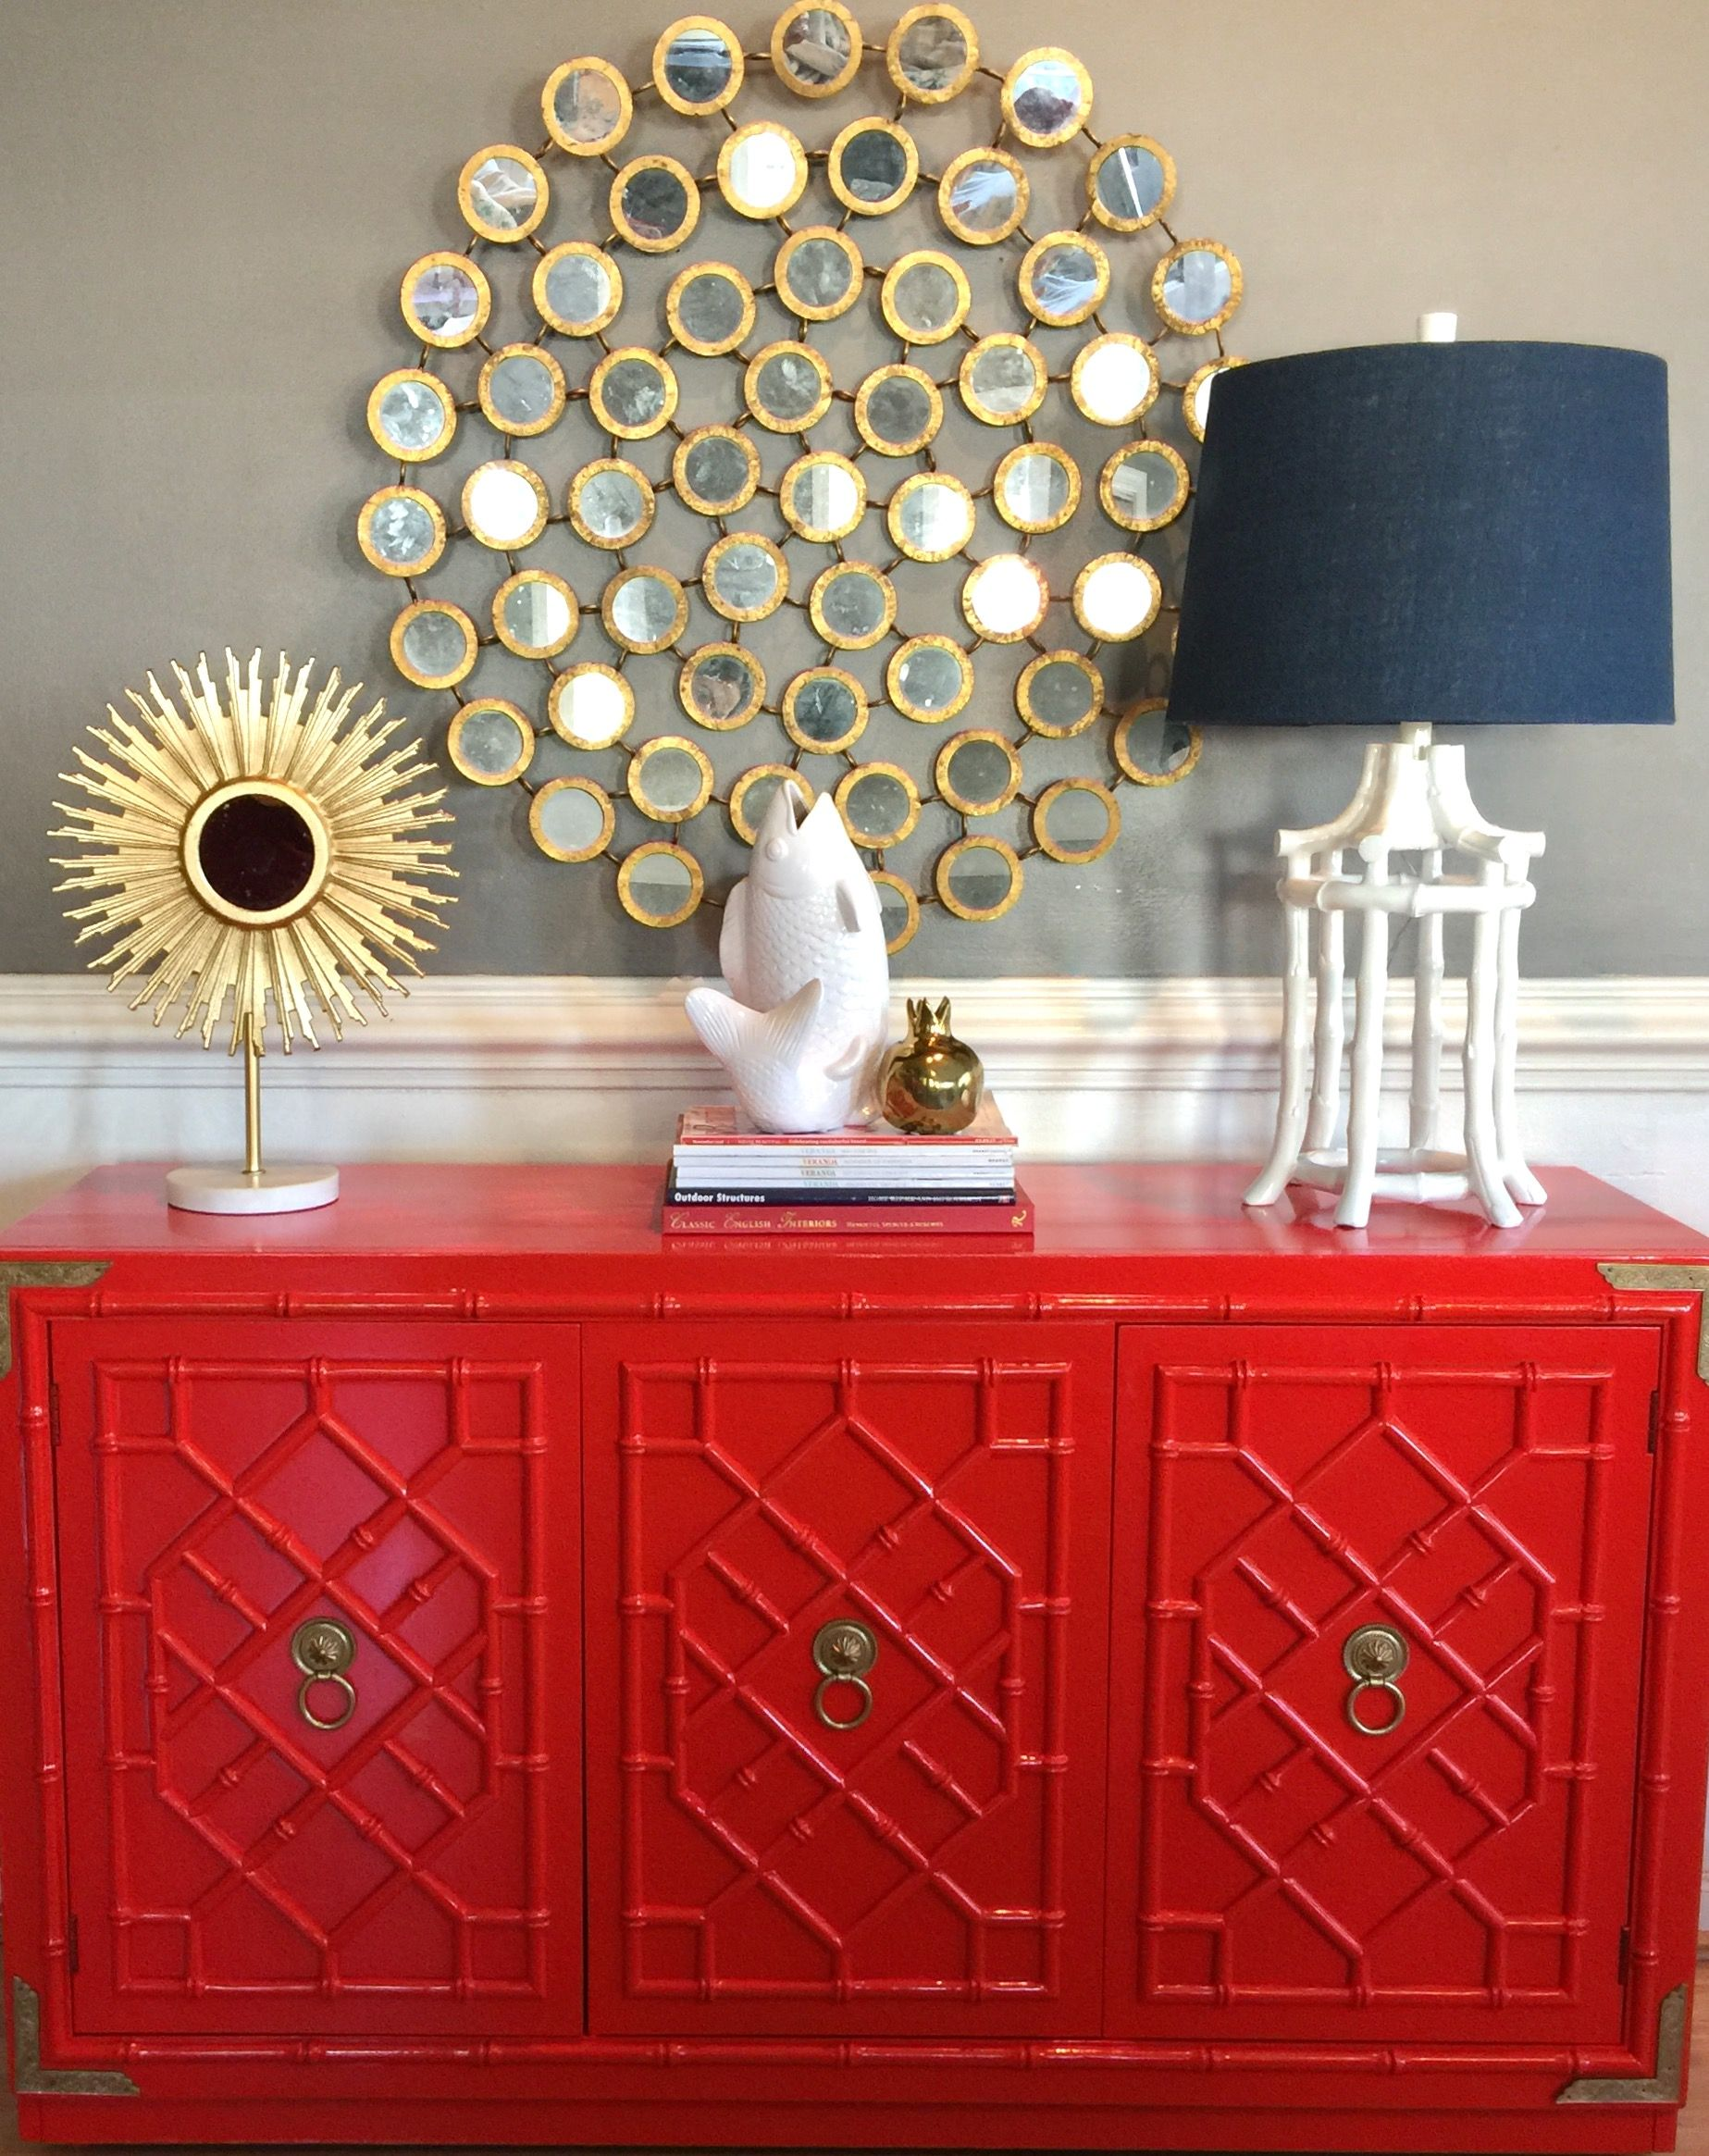 Thomasville Huntley Allegro Faux Bamboo Fretwork Buffet Server Redone In High Gloss Red Visit VintageModernEclectic